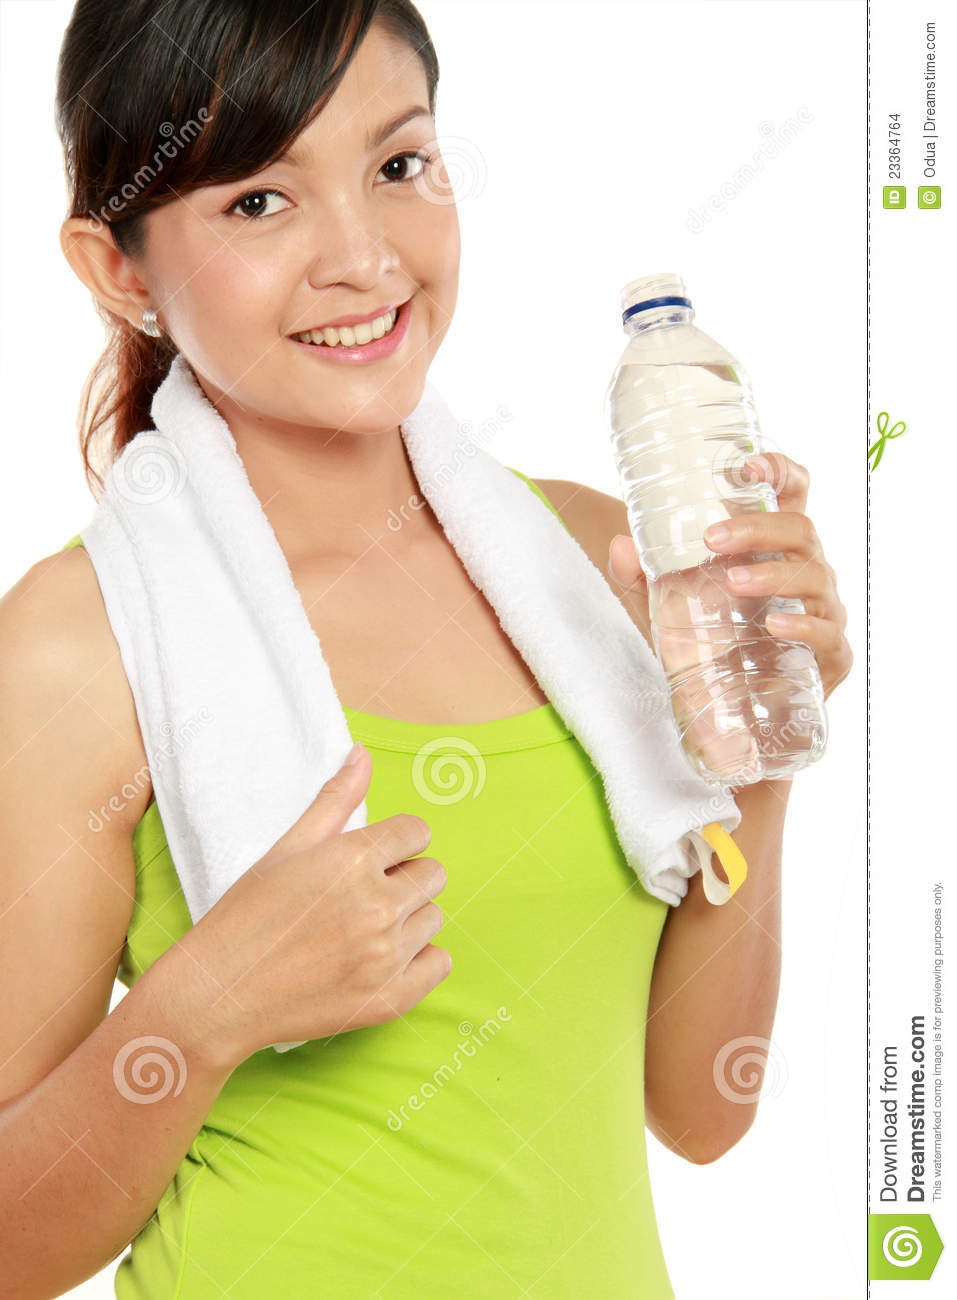 Fitness Woman Drinking Water Stock Images - Image: 23364764